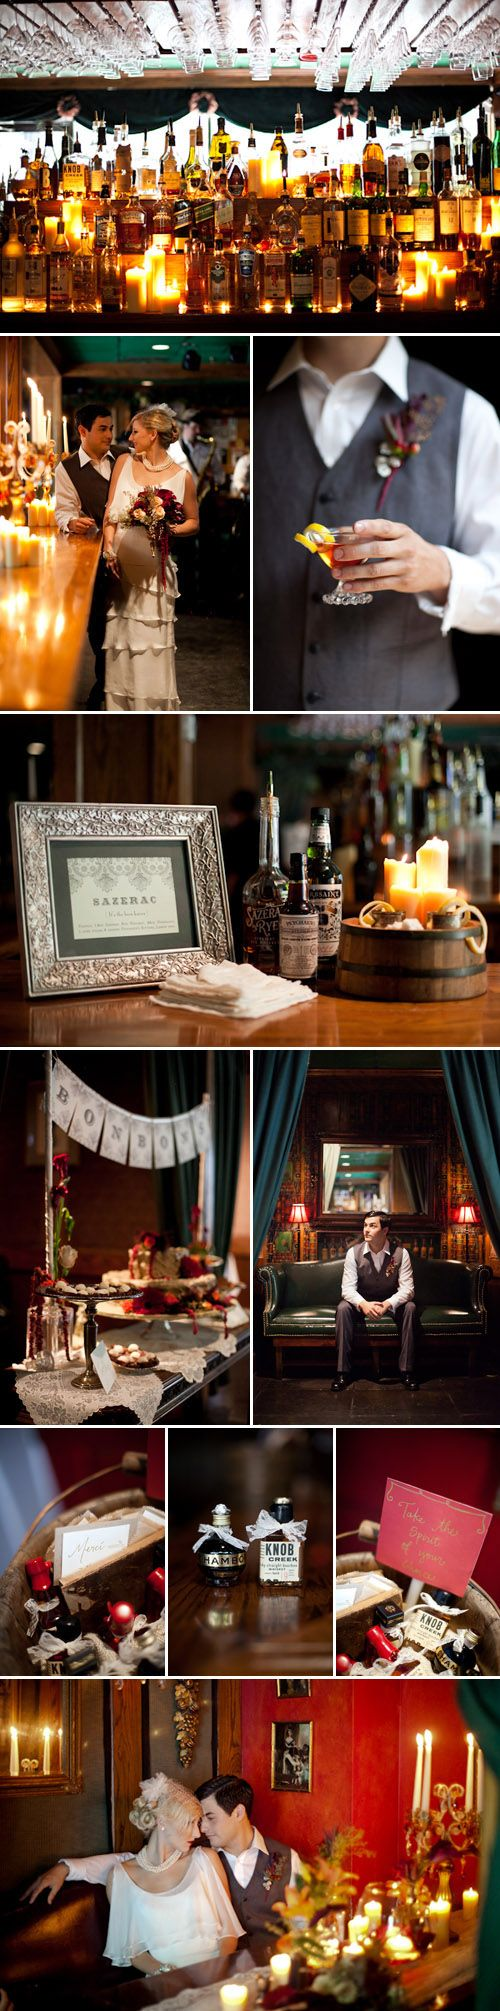 1920s Paris and New Orleans Wedding Inspiration and Ideas - Junebug's Wedding Blog - Celebrating the Best in Wedding Style, Fashion, Photography and Decor